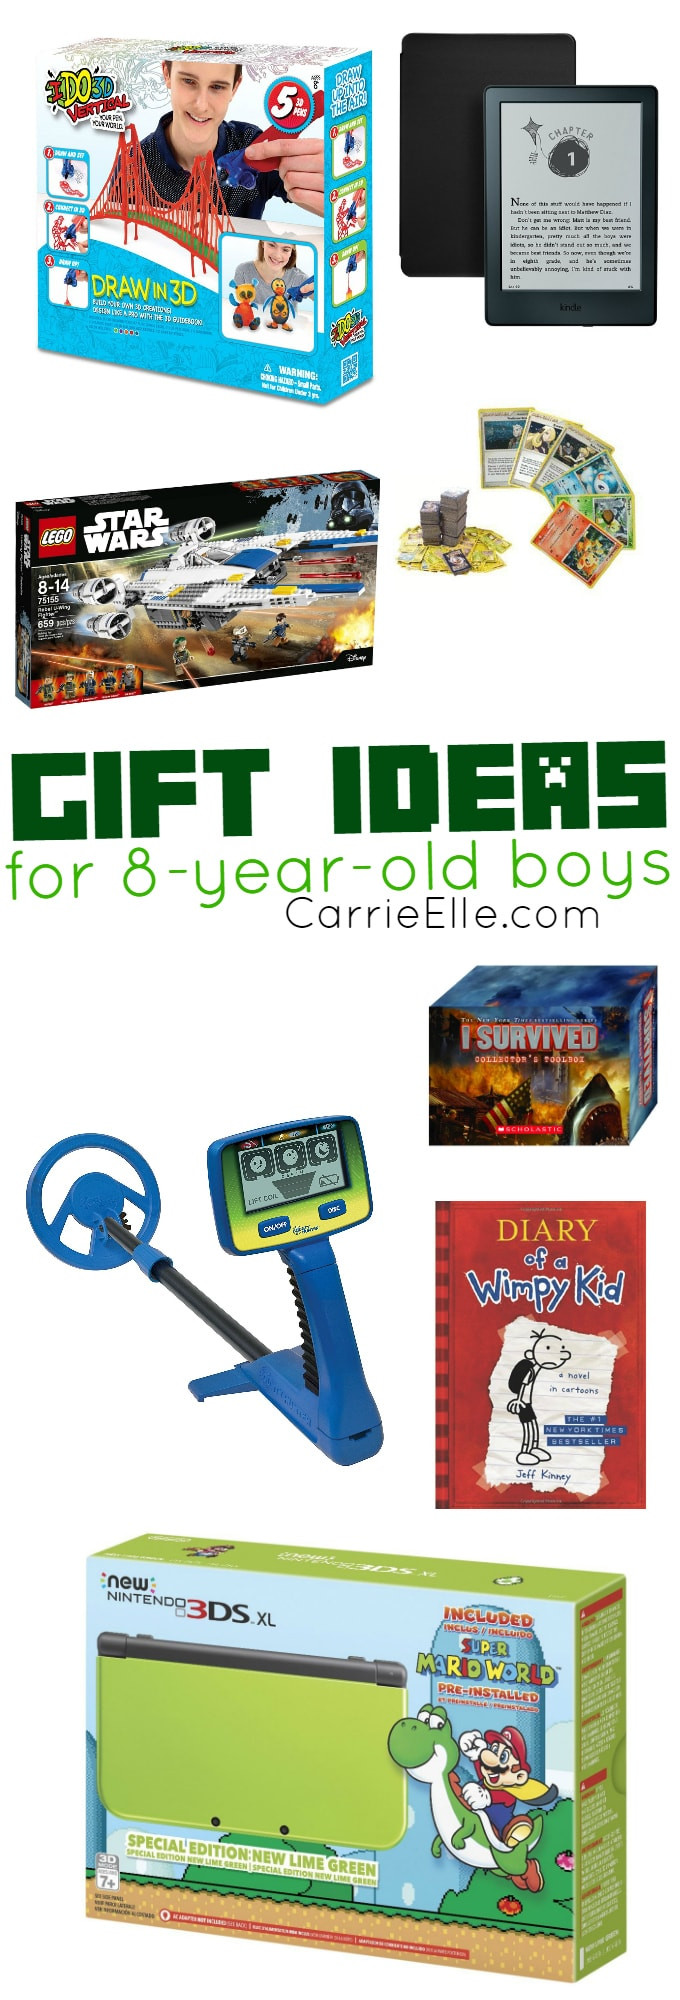 Best ideas about Gift Ideas For 8 Year Old Boys . Save or Pin Gift Ideas for 8 Year Old Boys Carrie Elle Now.